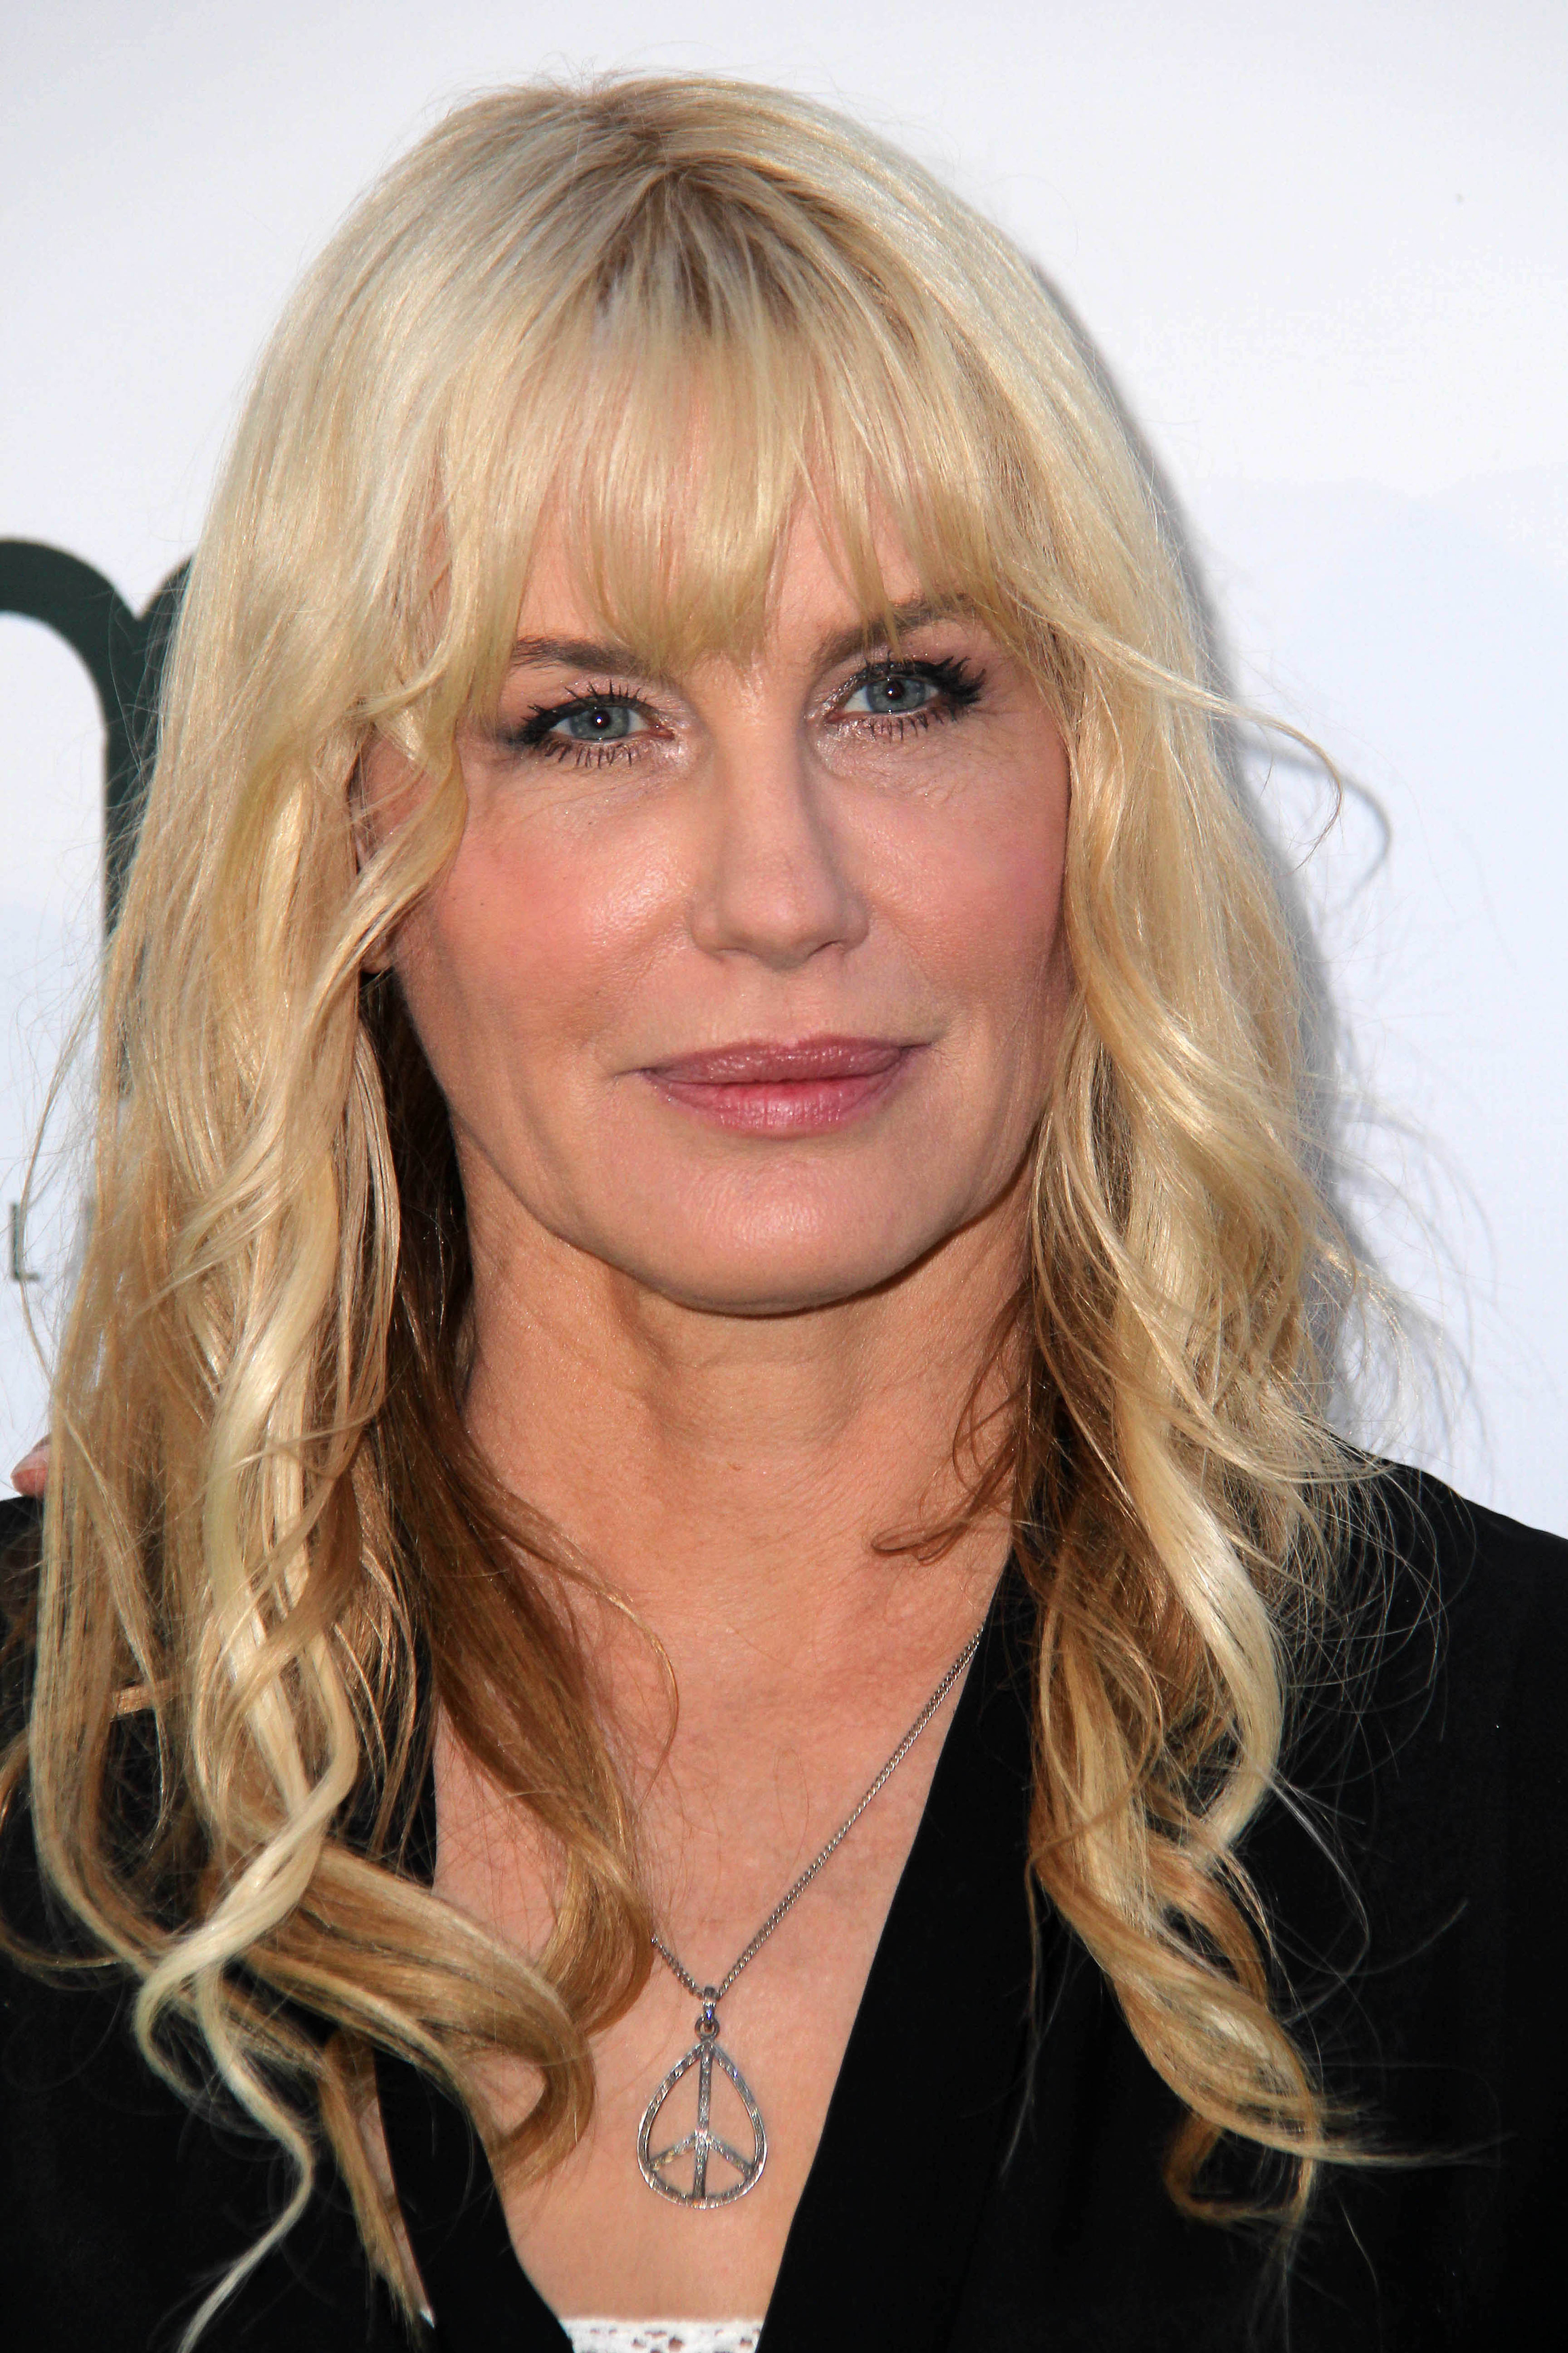 Daryl Hannah talks about new role in Sense8 and of feeling different